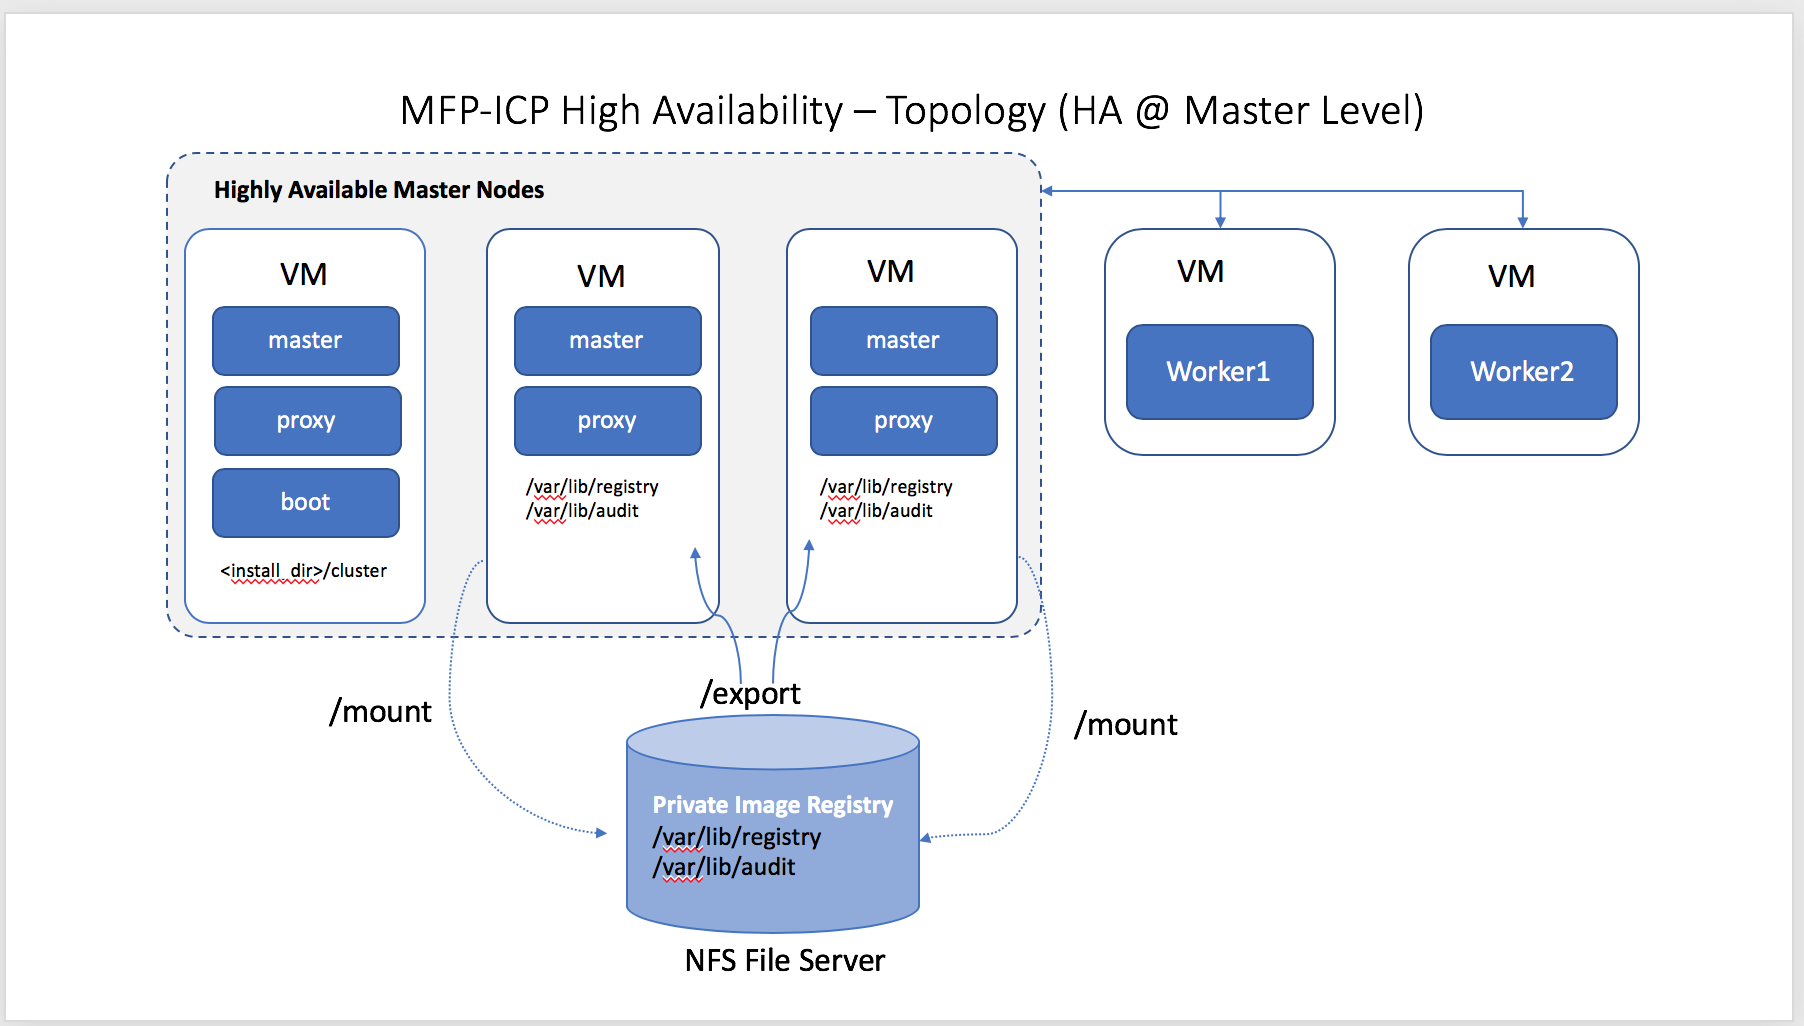 Setting up a High Available (HA) Mobile Foundation environment on